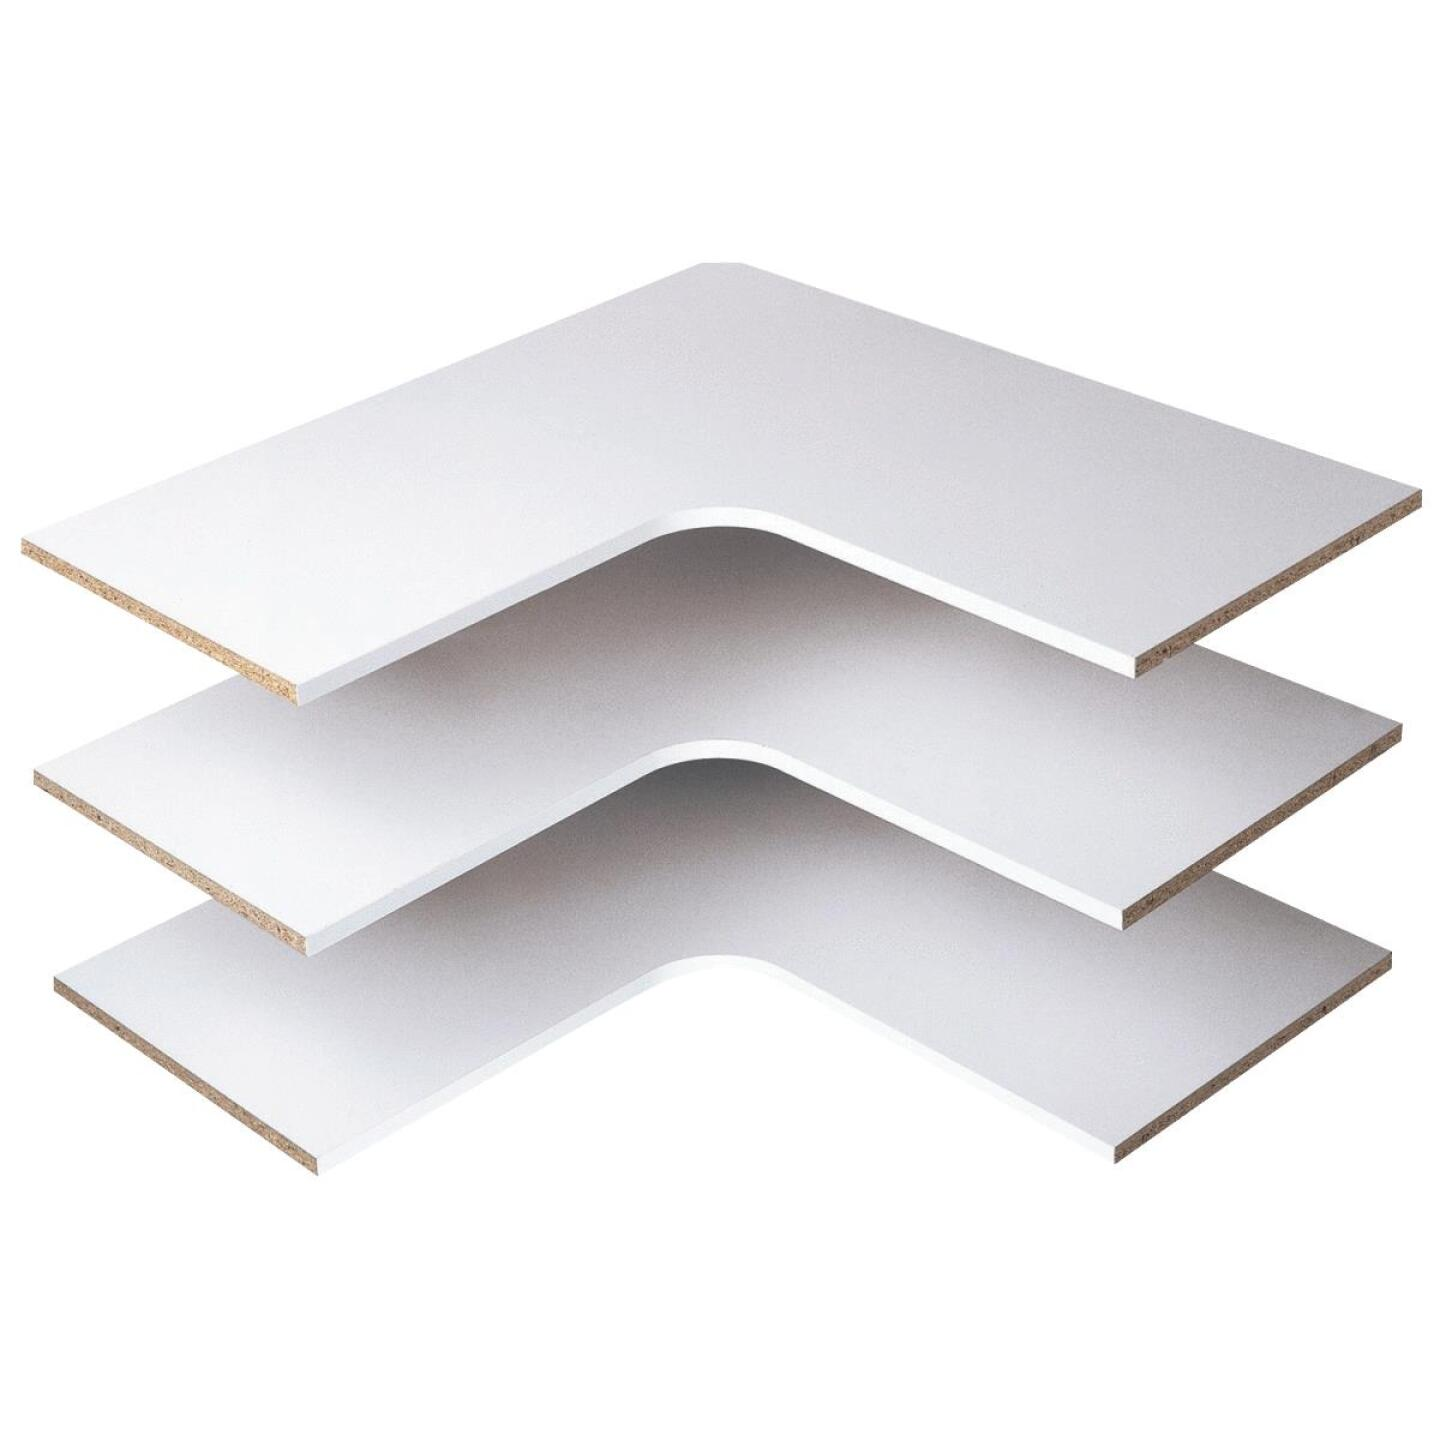 Easy Track 29-7/8 In. Corner Shelf, White (3-Pack) Image 1